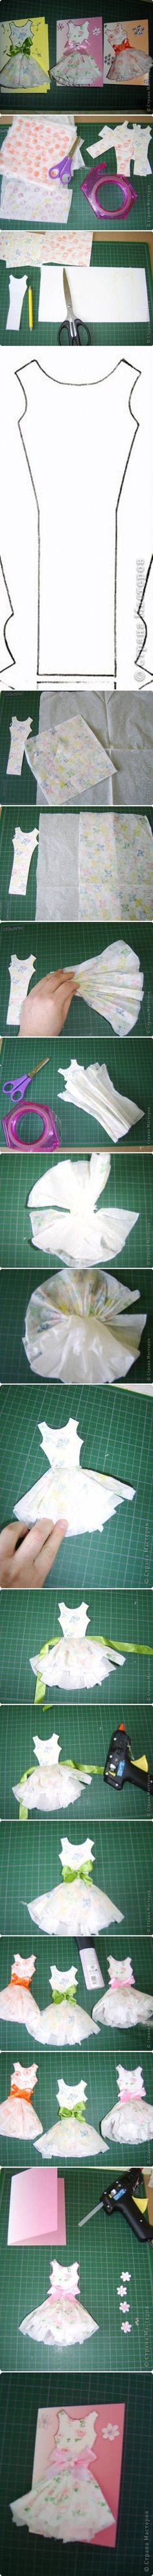 DIY Paper Dress Card Topper DIY Projects